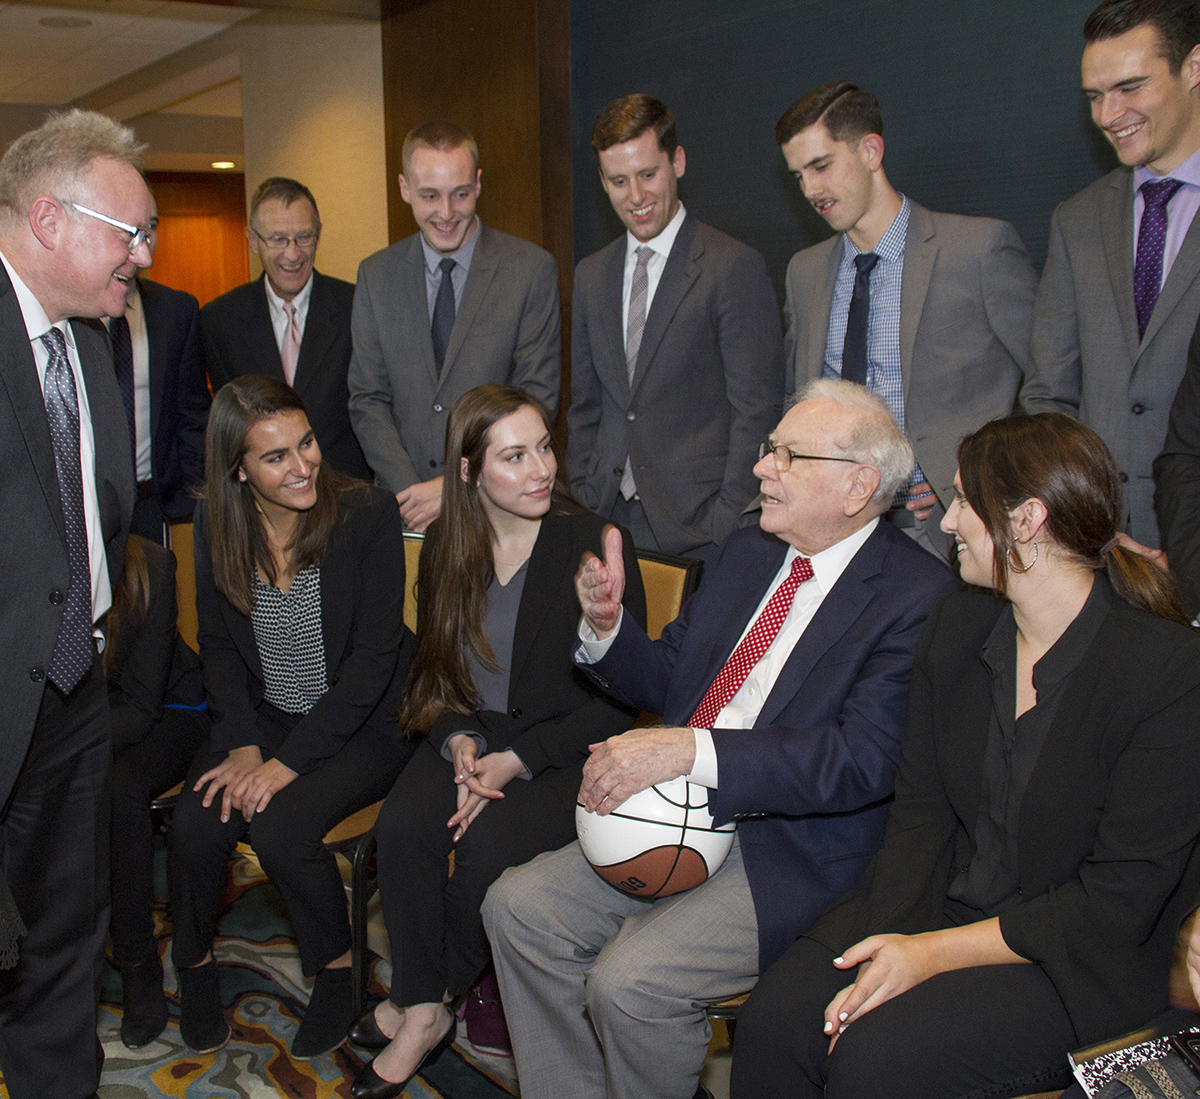 Business Students Reflect on Meeting Warren Buffett